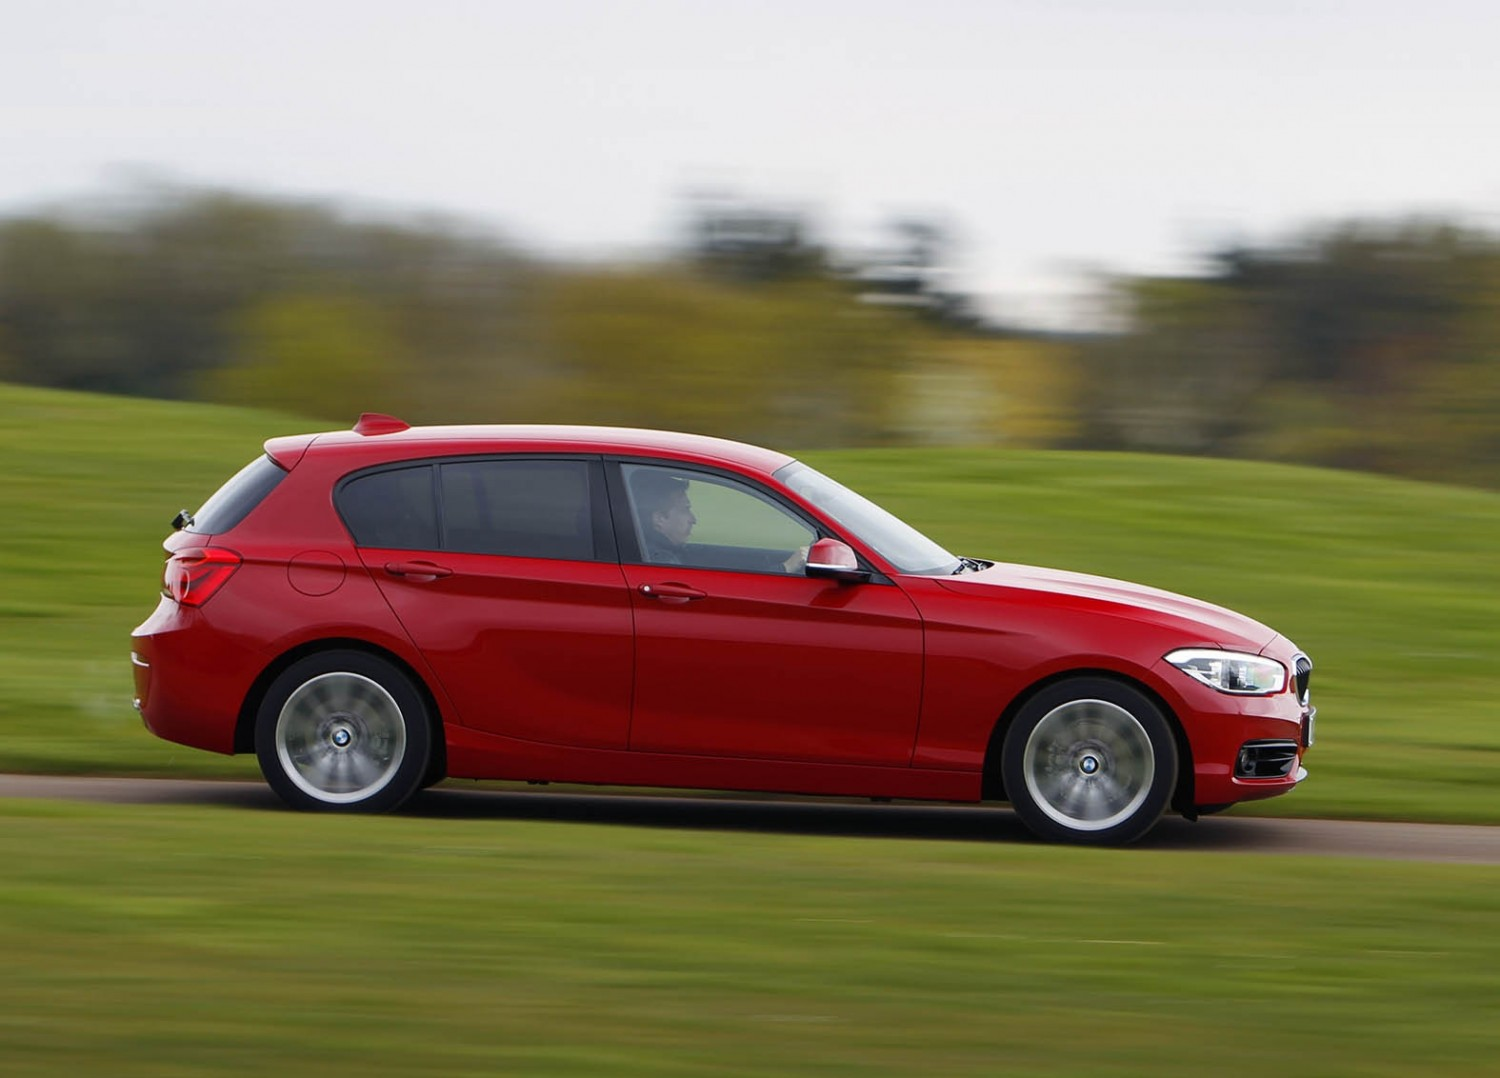 bmw 1 series used car review eurekar. Black Bedroom Furniture Sets. Home Design Ideas